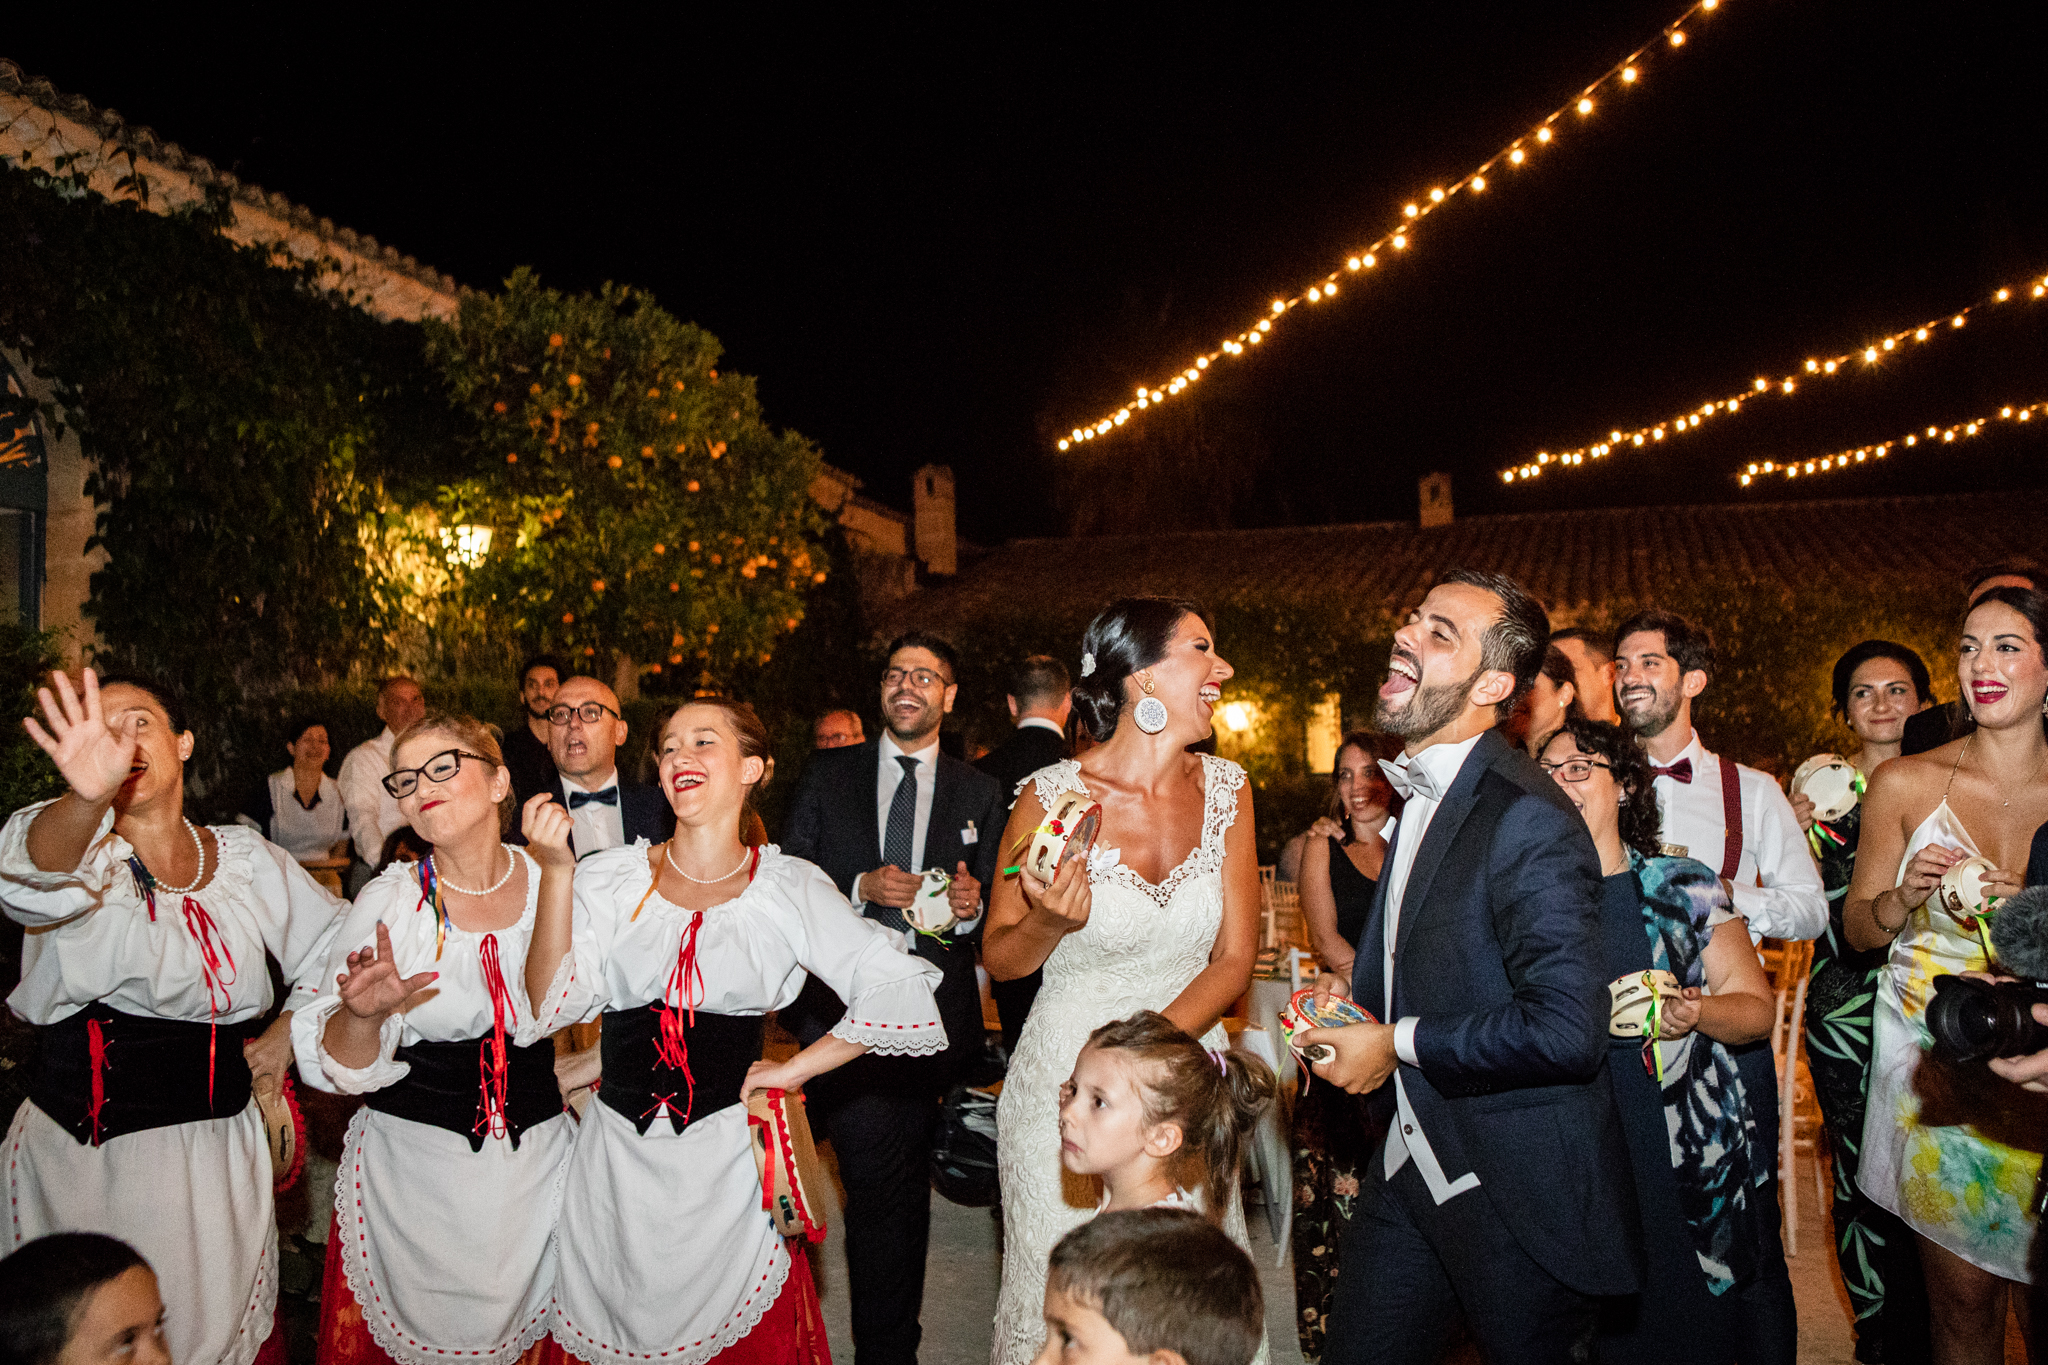 Best-wedding-photographer-in-Sicily- Catania-49.jpg